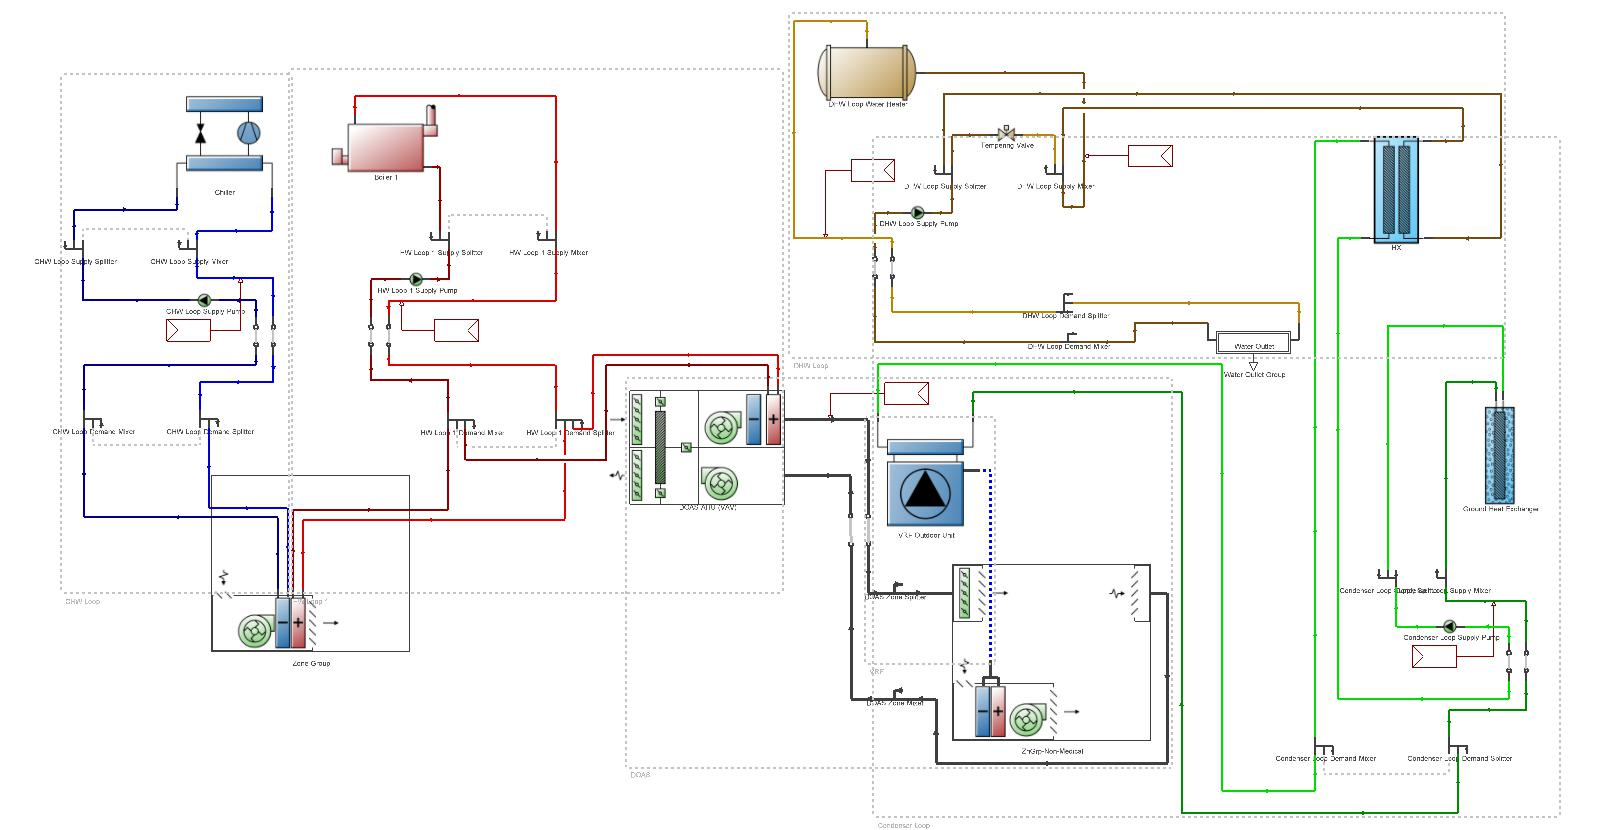 hight resolution of what is a good software to draw hvac equipments plan unmet hours hvac diagram drawing